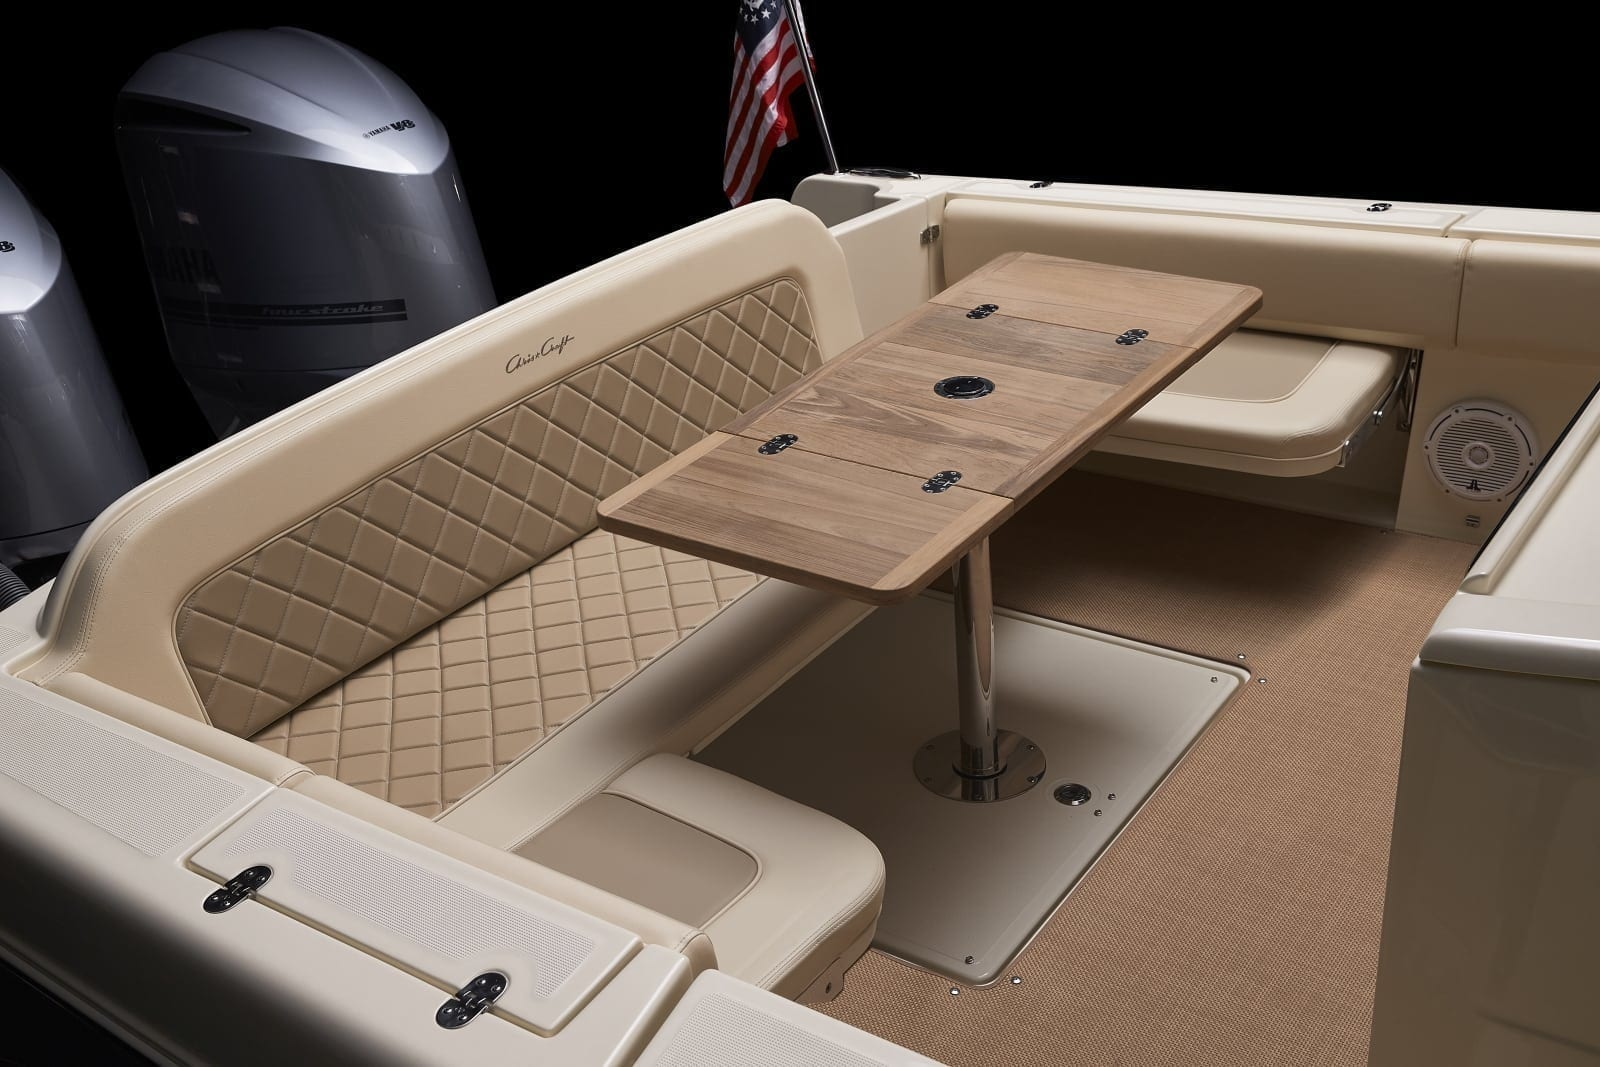 Chris Craft Catalina 34 Rear Table Unfolded